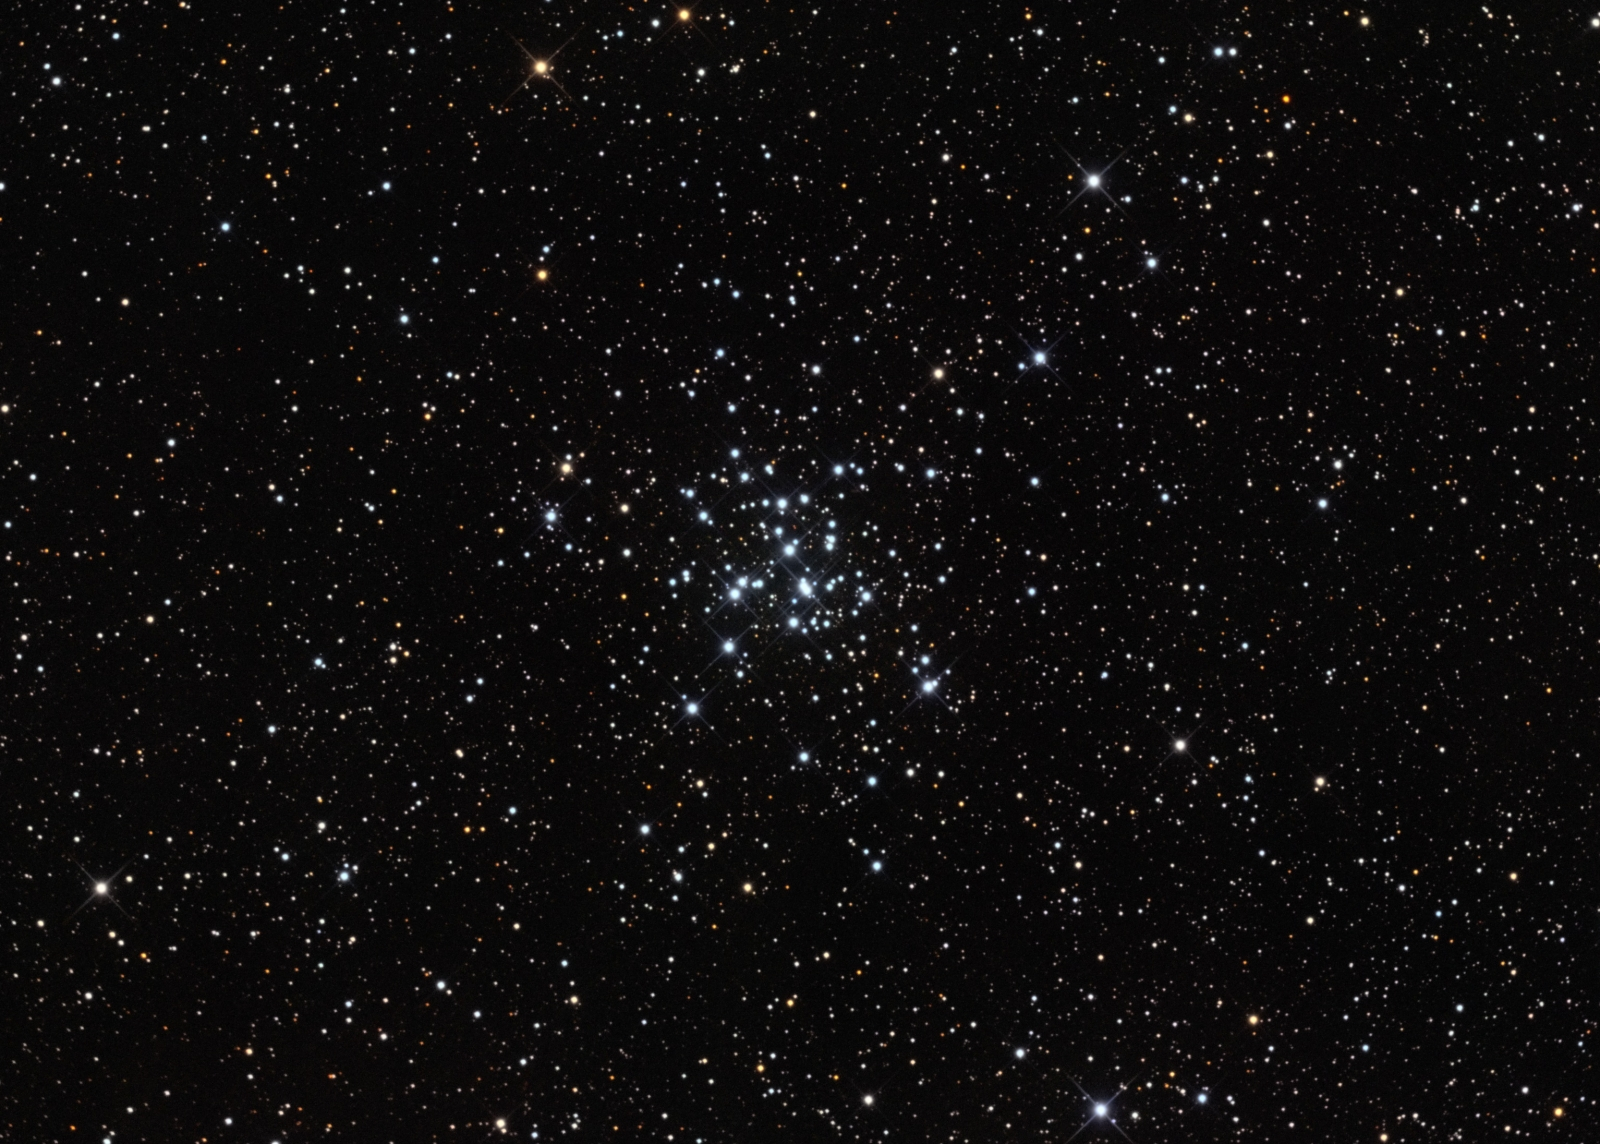 M36 open cluster